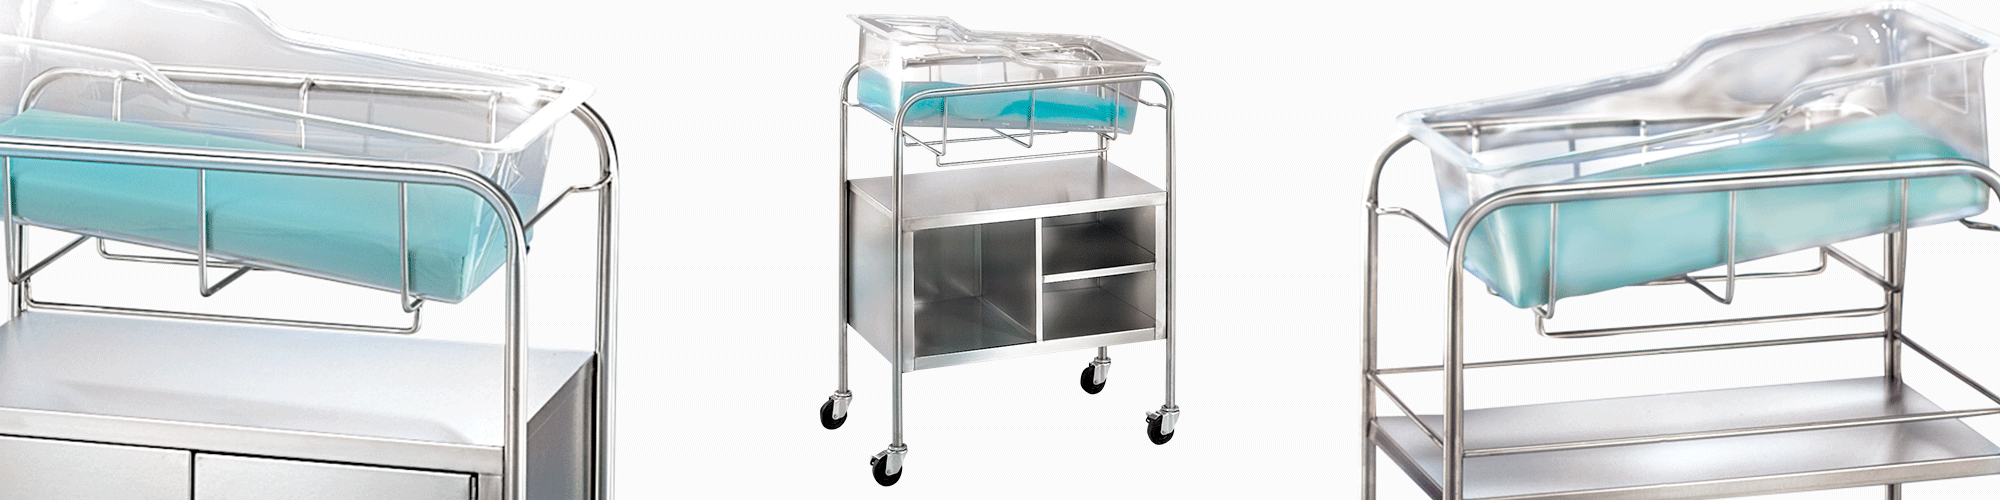 stainless-bassinet-basket-stand-banner.png